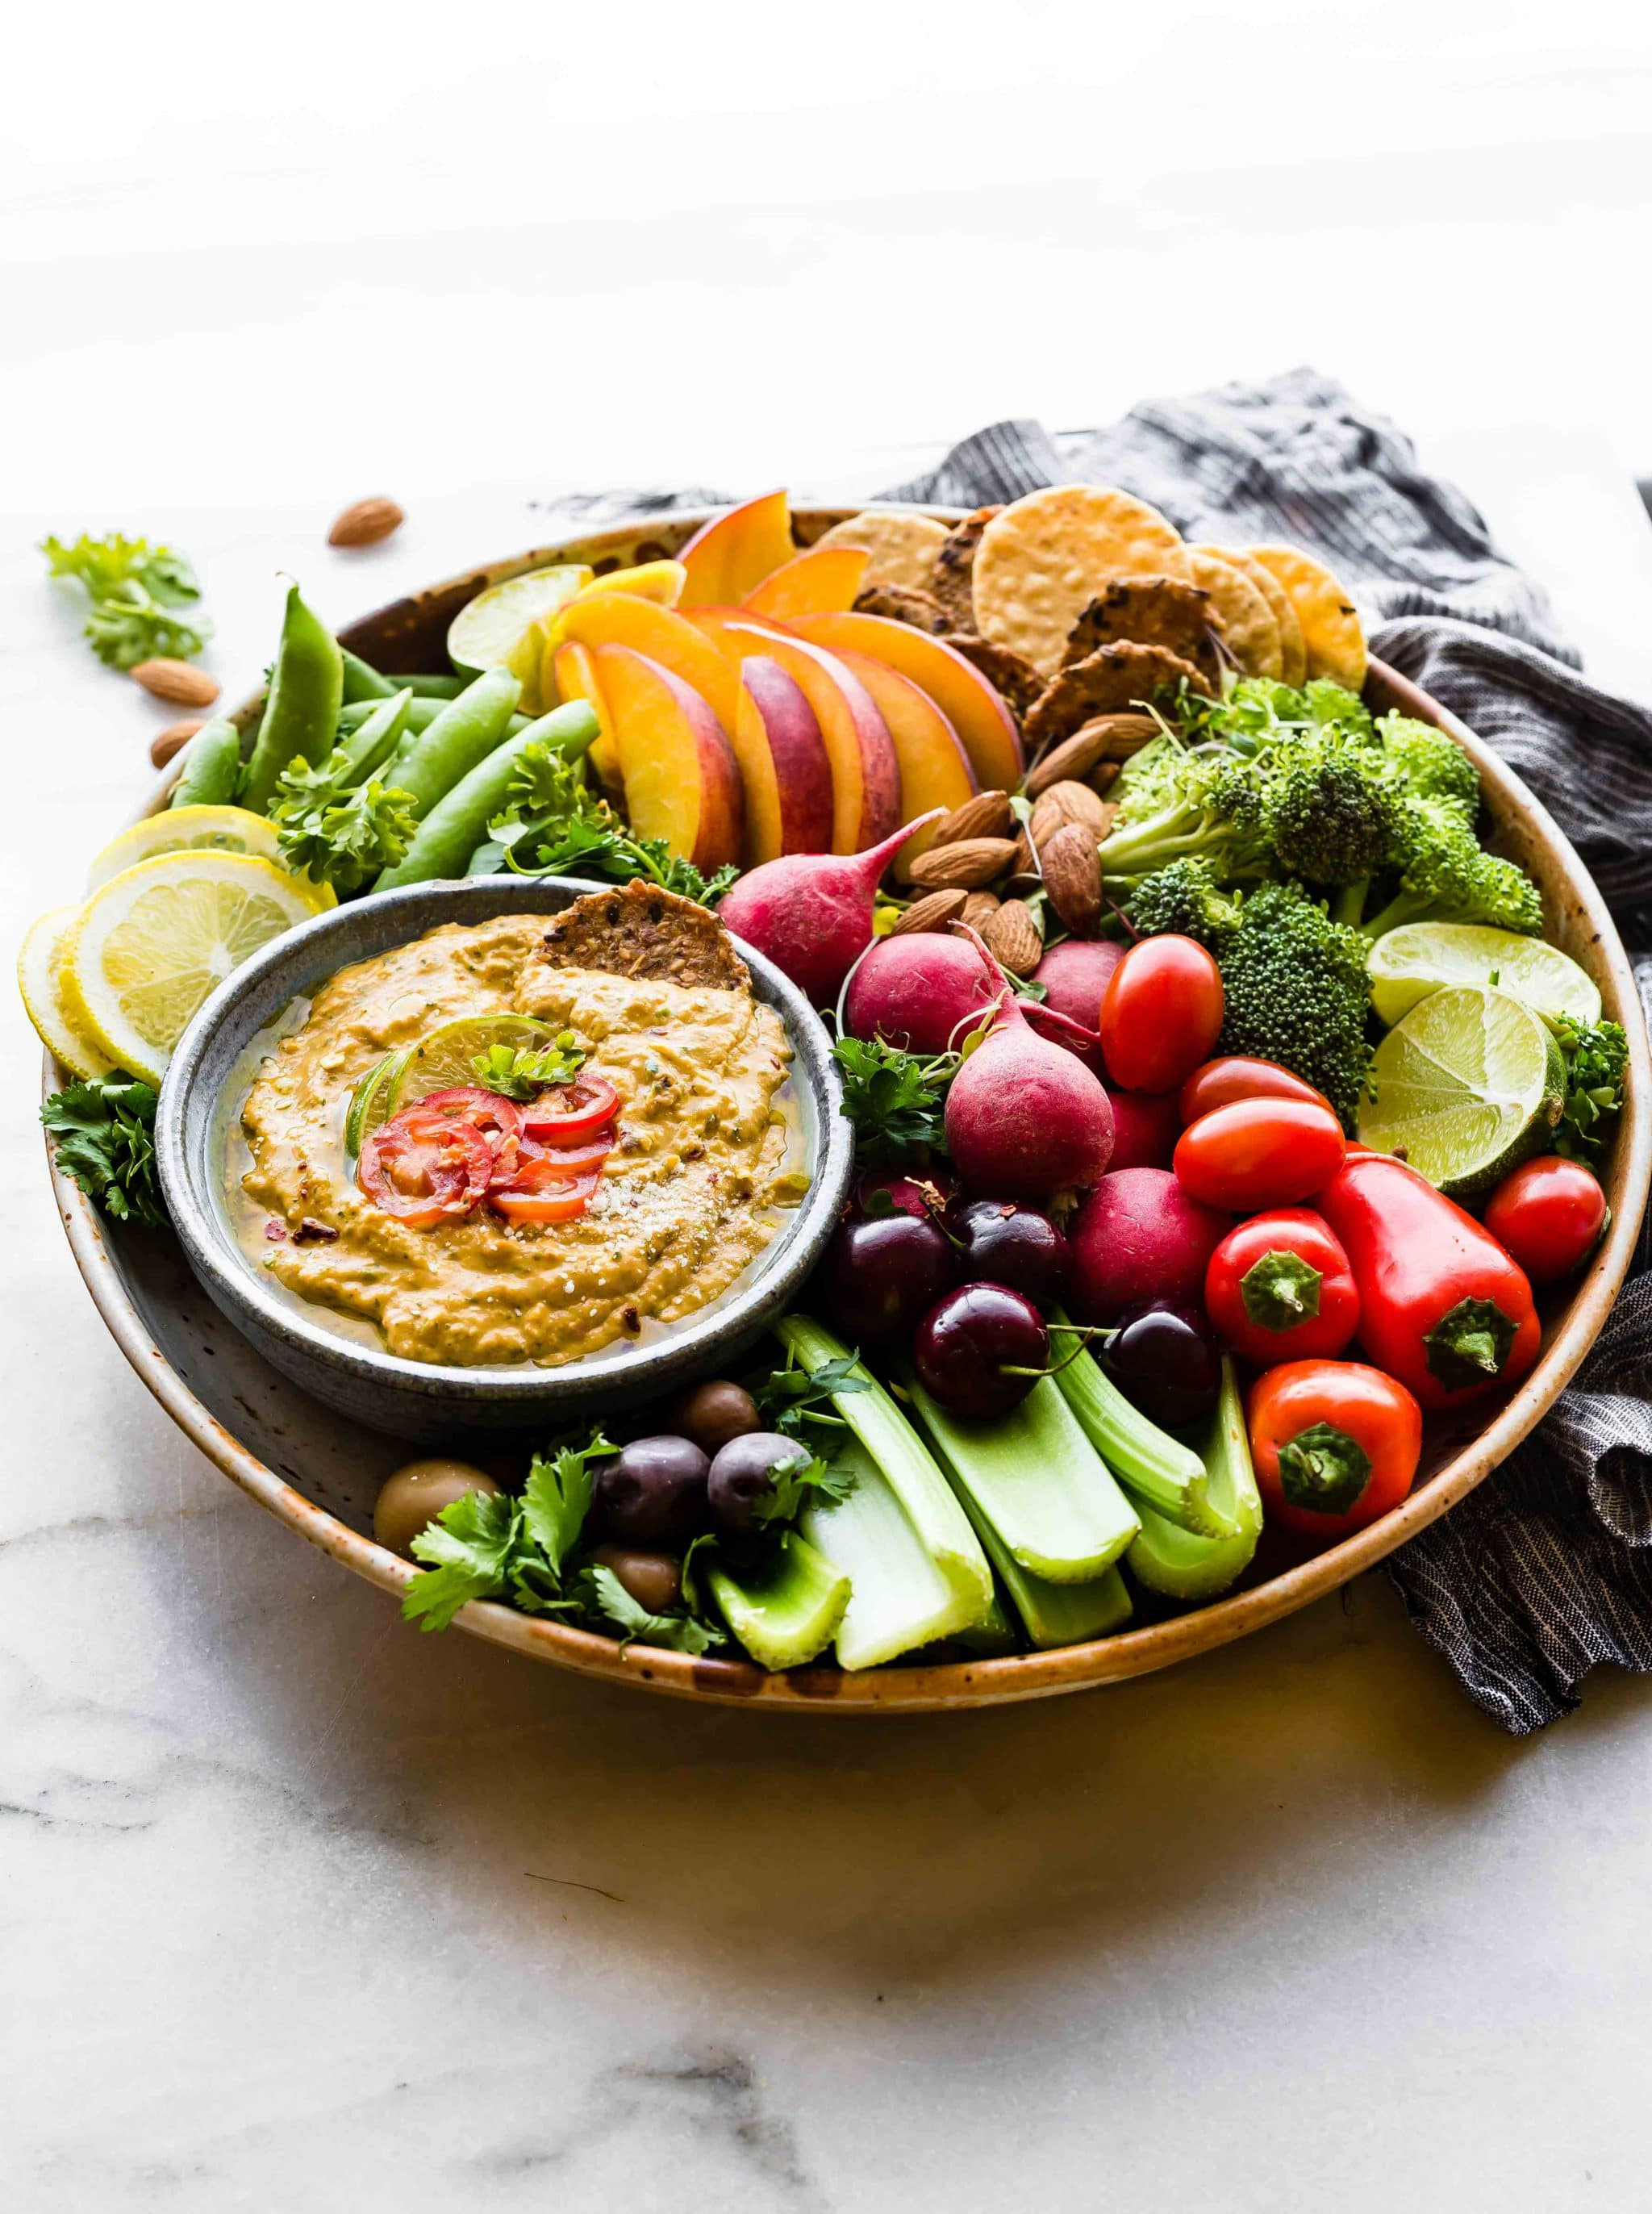 This Spicy mango avocado yogurt dip is NOT your average healthy appetizer! It's A NEW TASTY way to eat veggies! Mango, yogurt, avocado, and a kick of spice from chilis makes this easy snack recipe a protein rich dip!